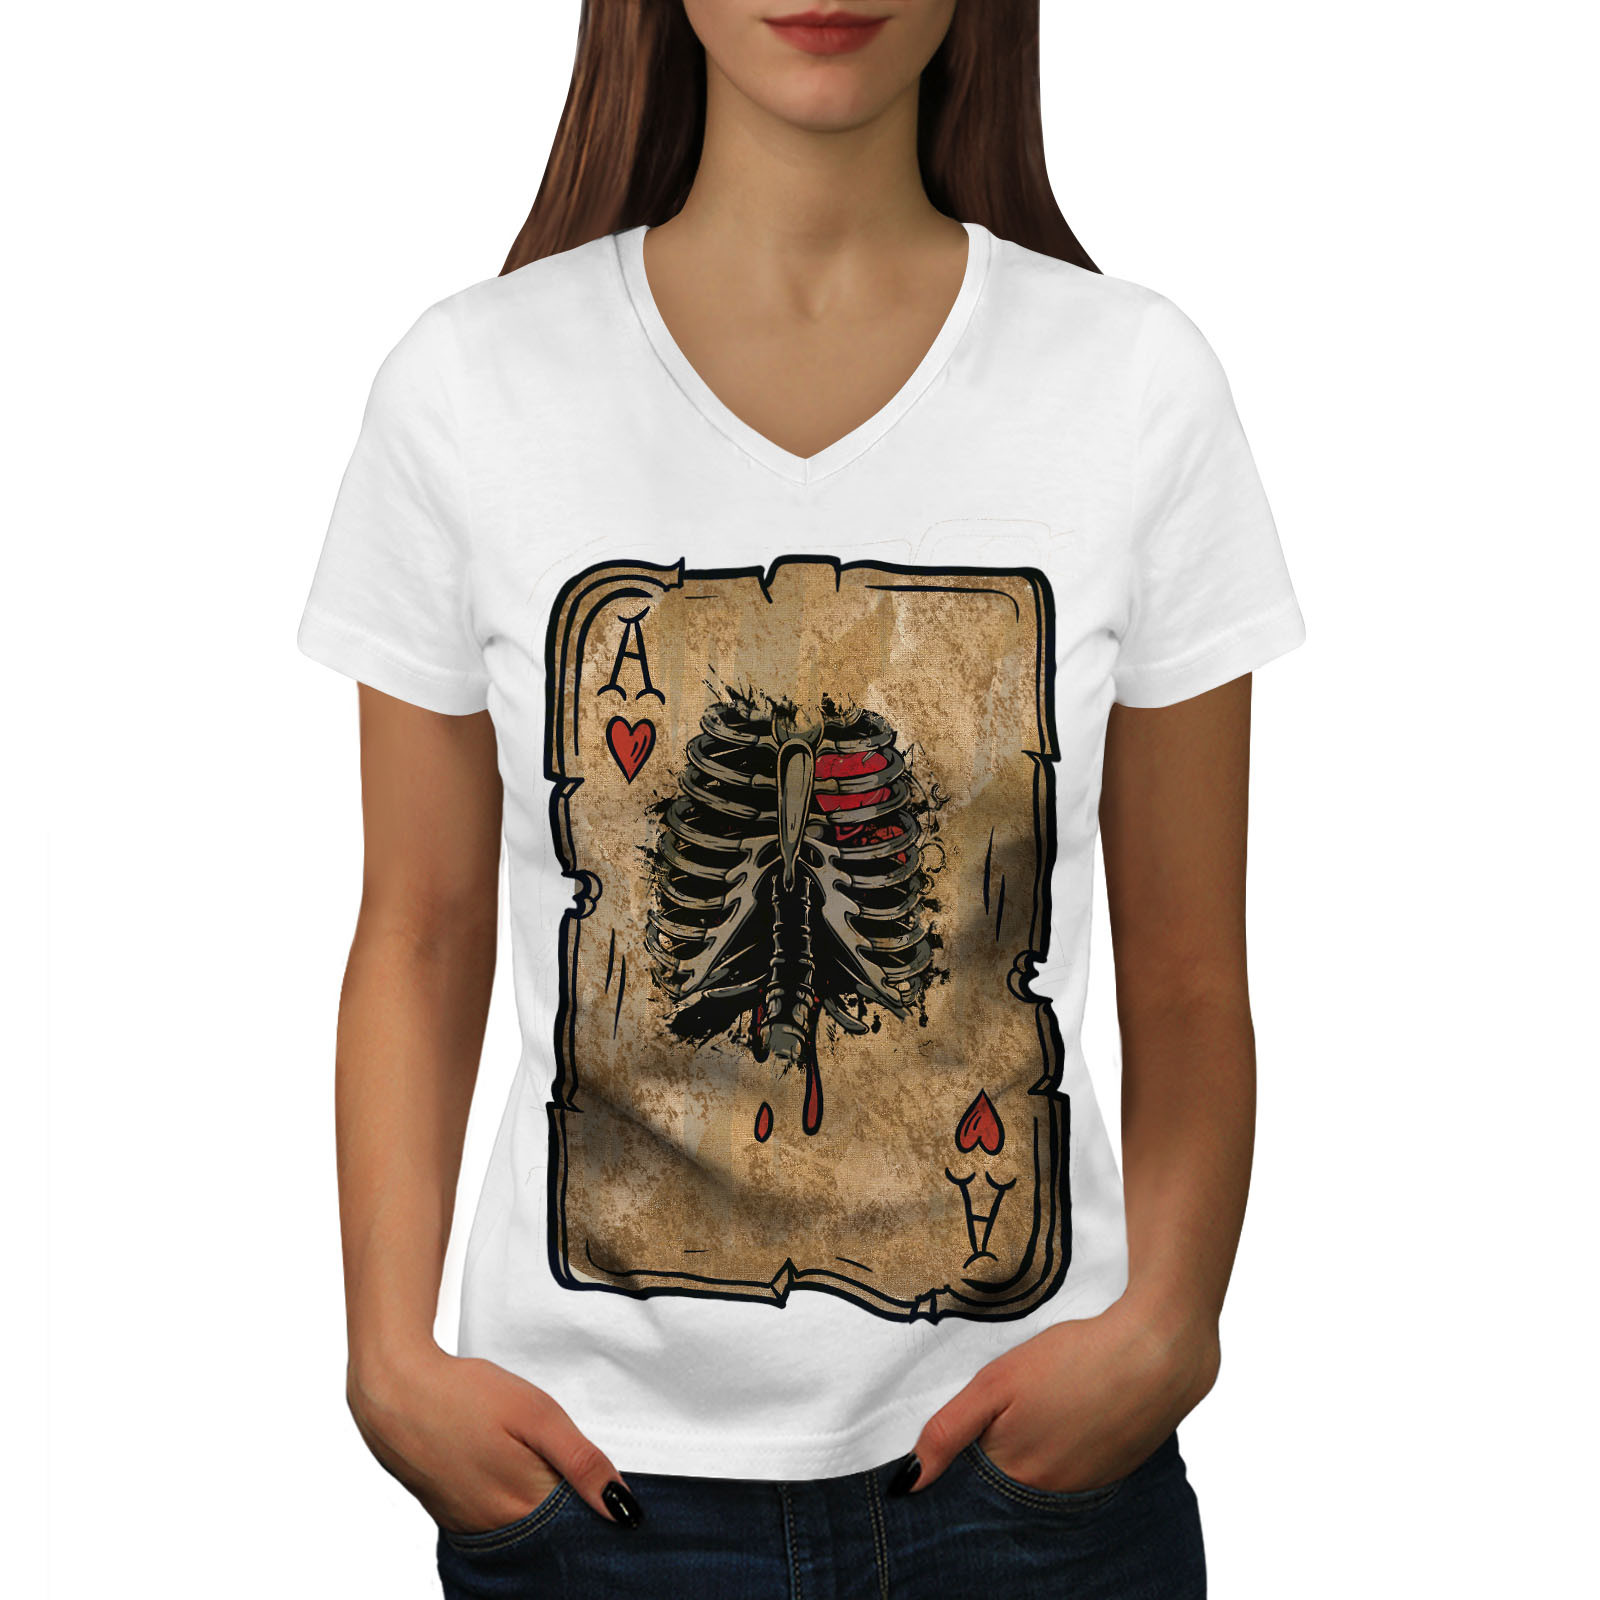 Wellcoda-Poker-Cartes-Skelet-Femme-T-Shirt-col-V-cage-thoracique-conception-graphique-Tee miniature 7